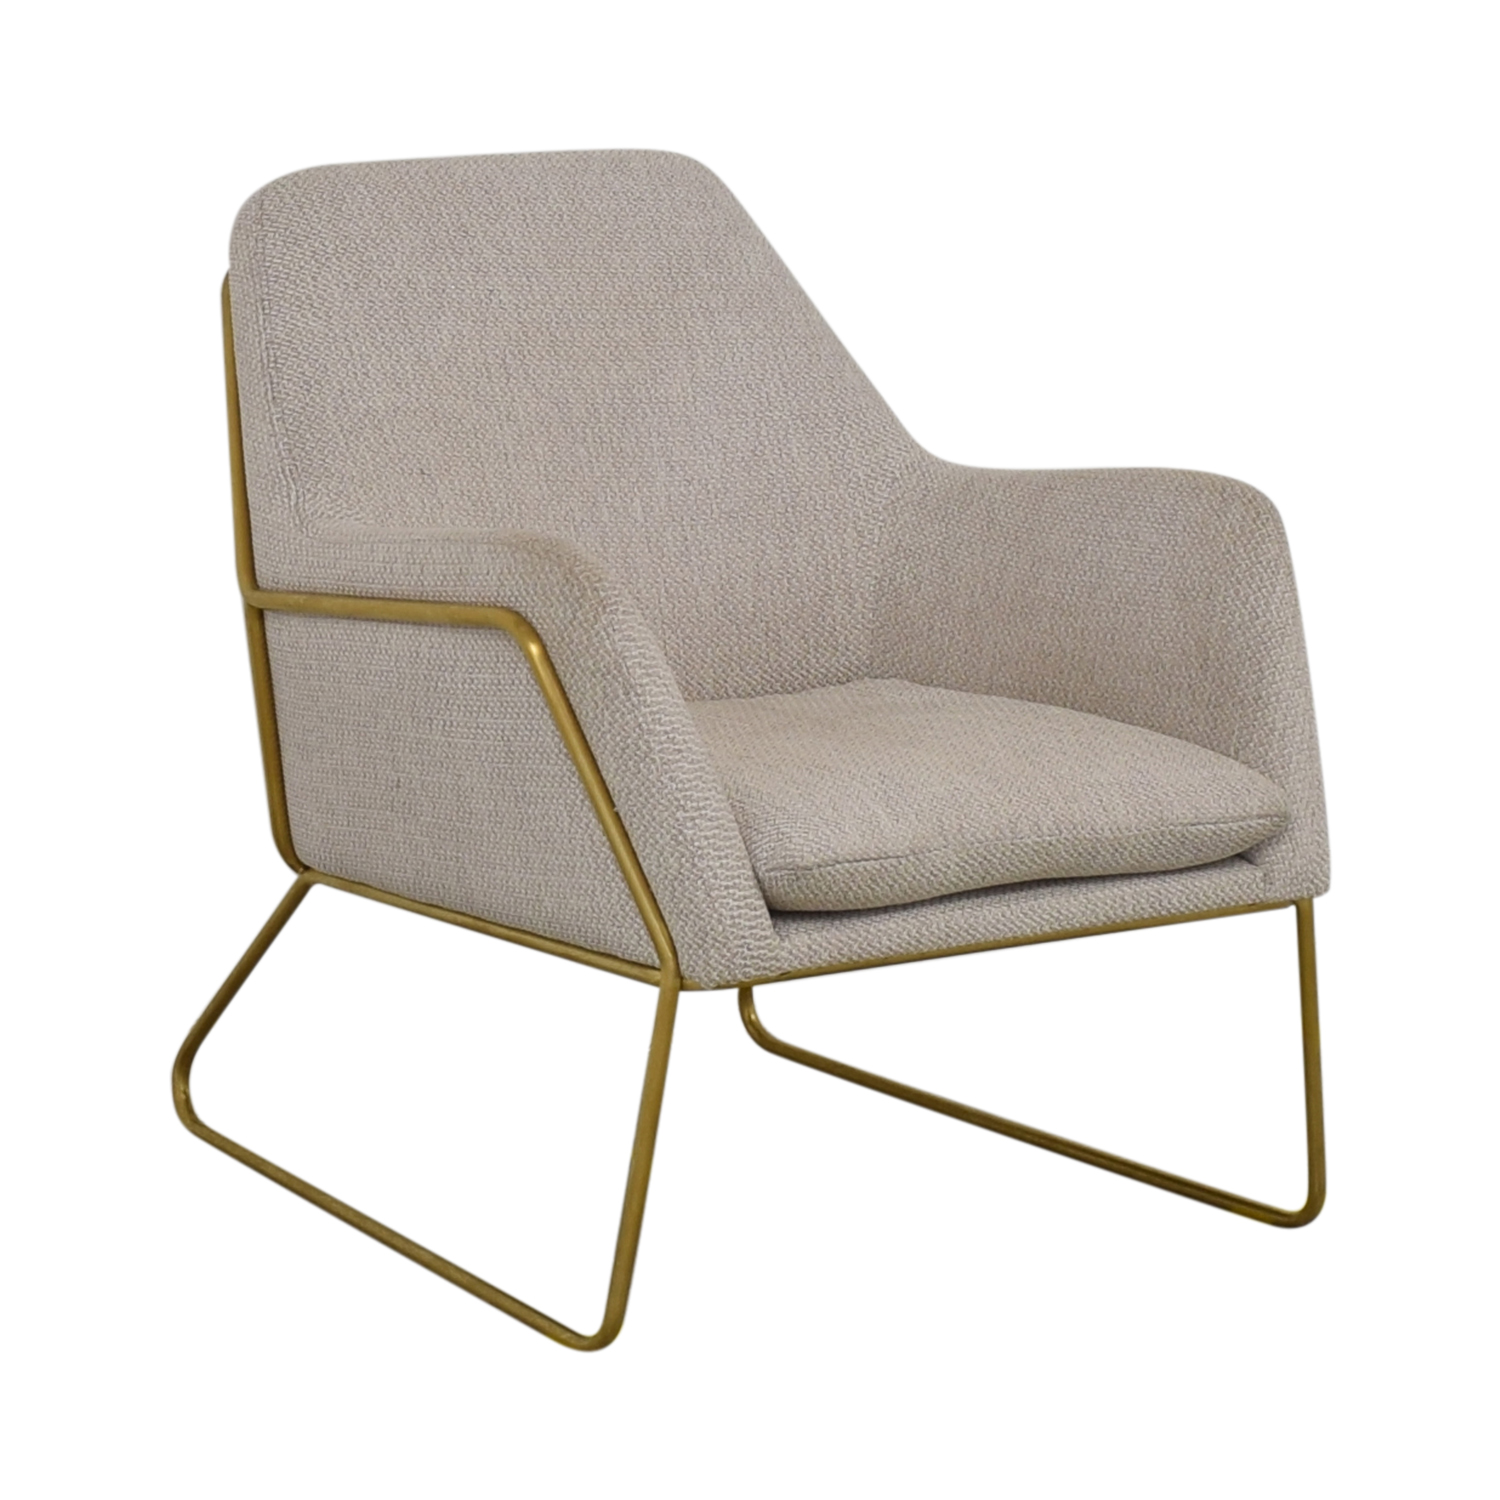 Article Article Forma Chair discount